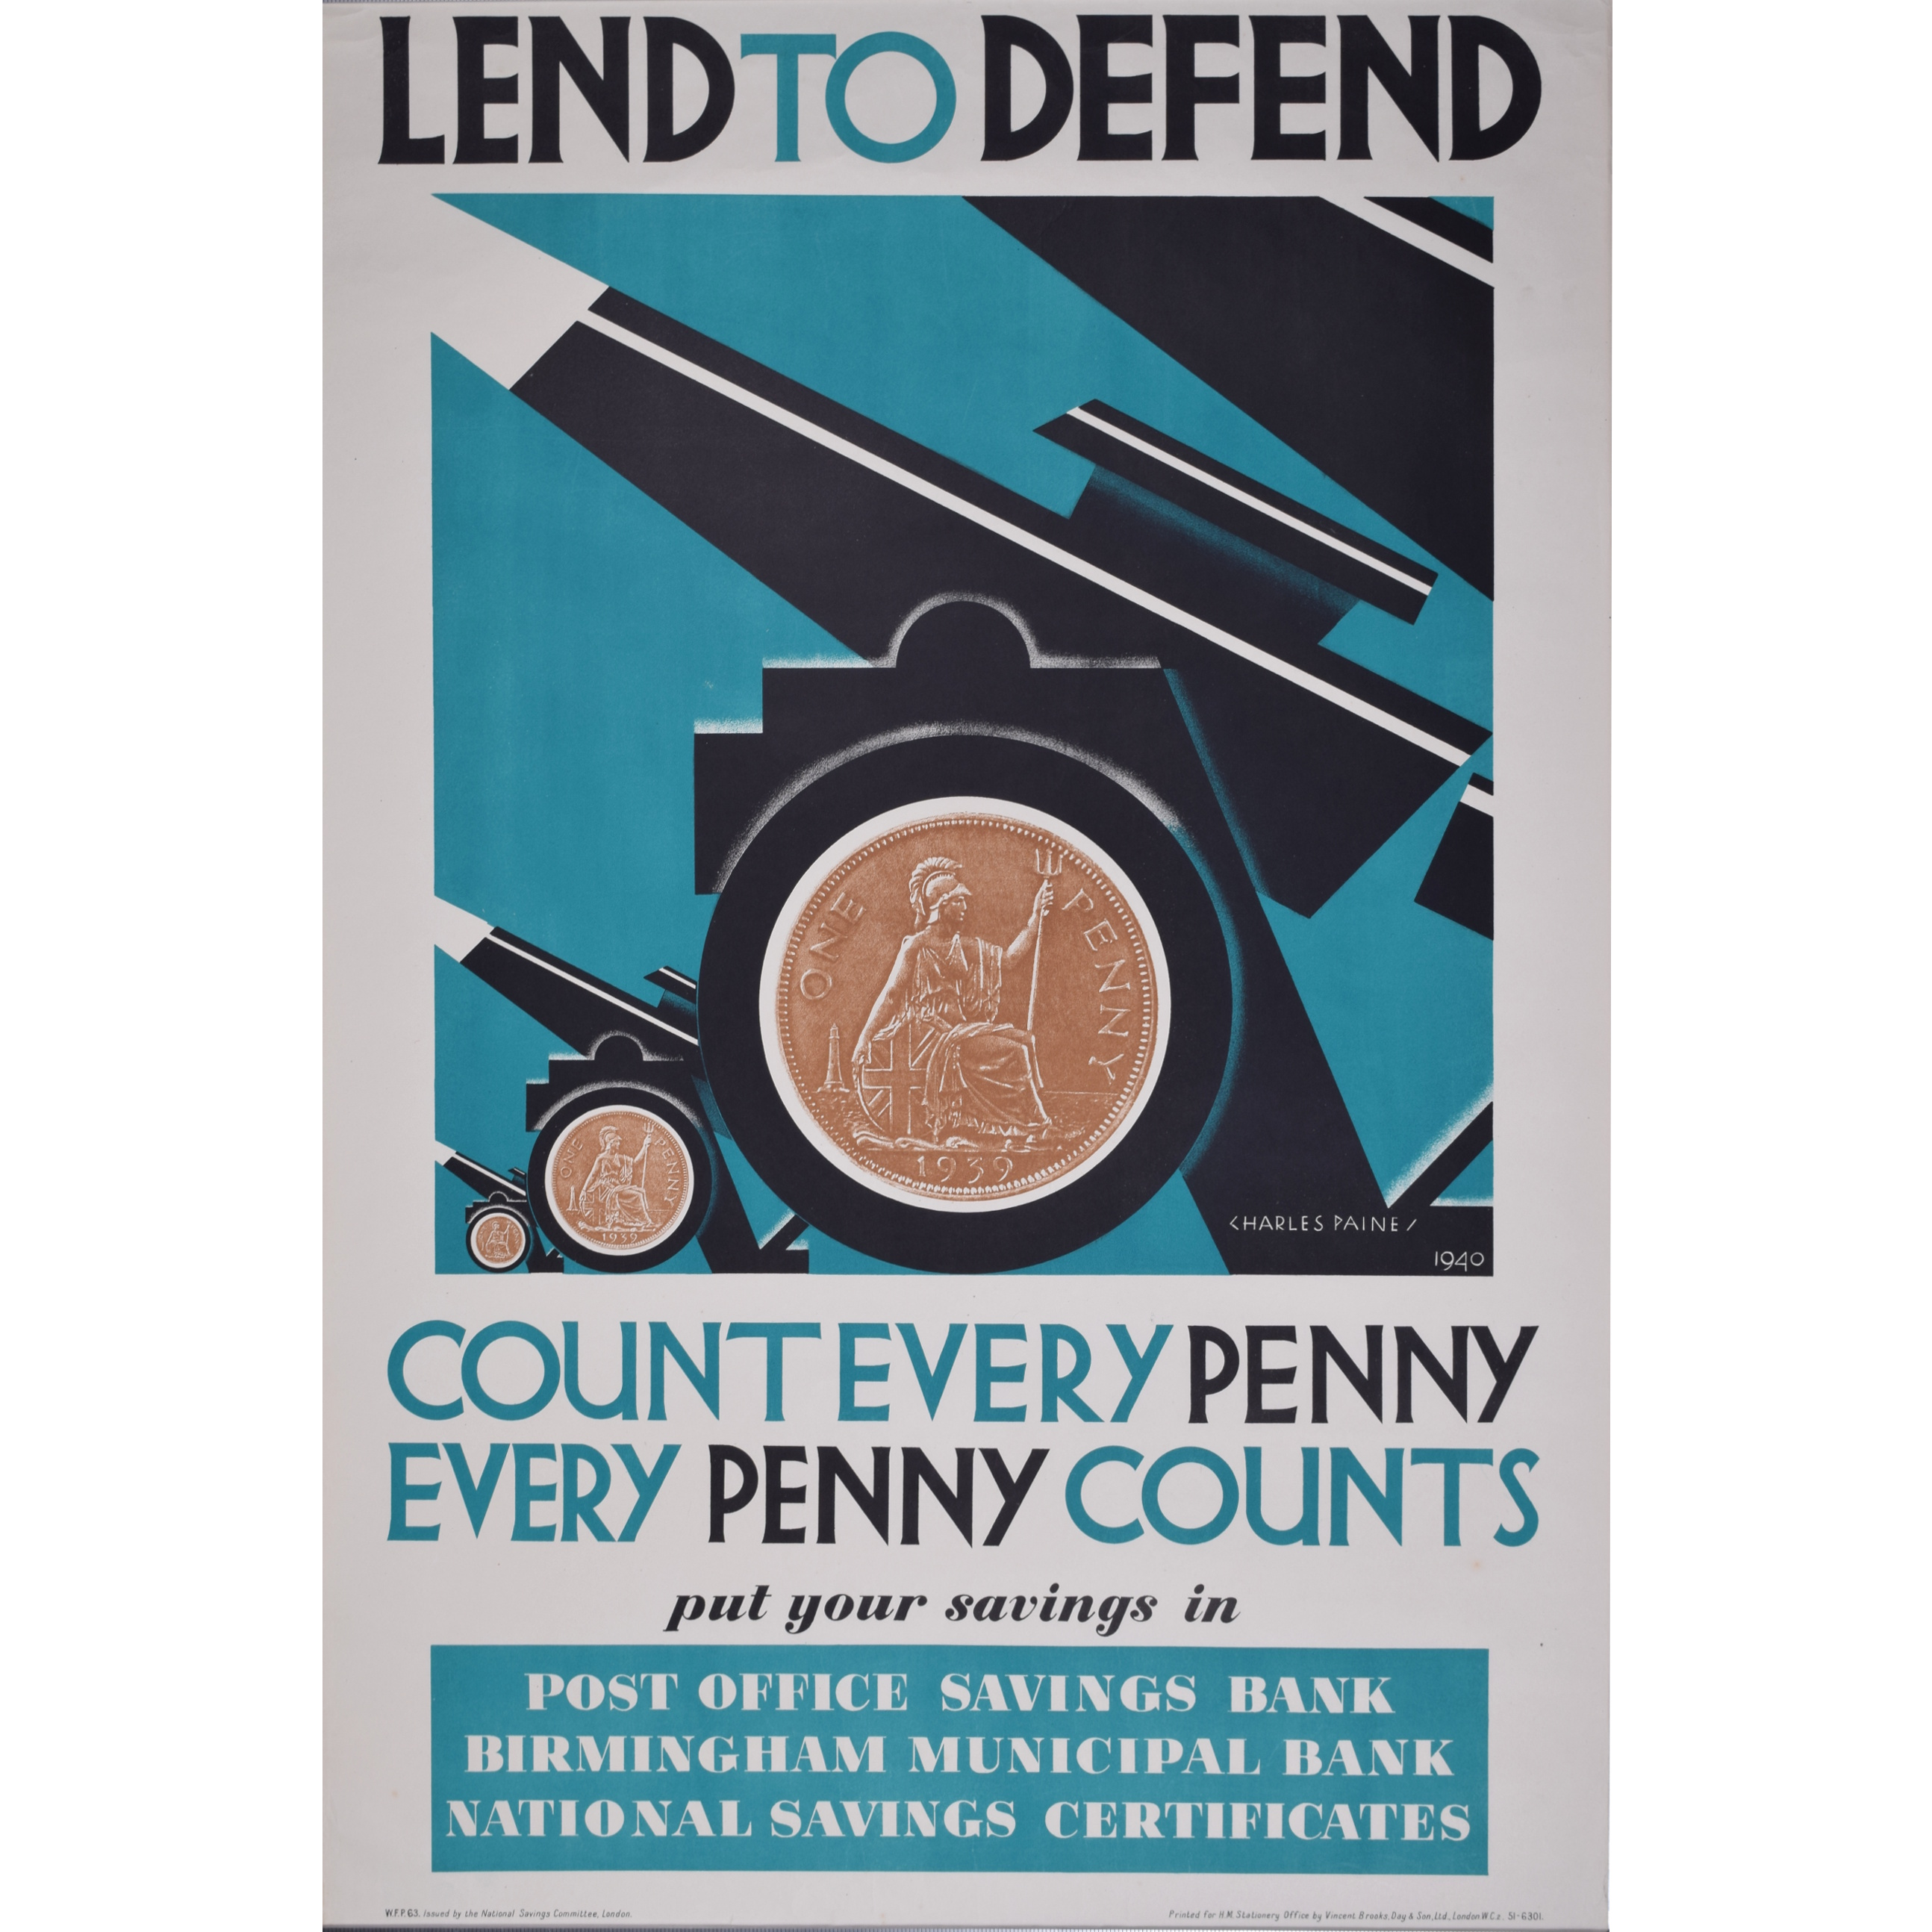 Charles Paine Lend to Defend poster